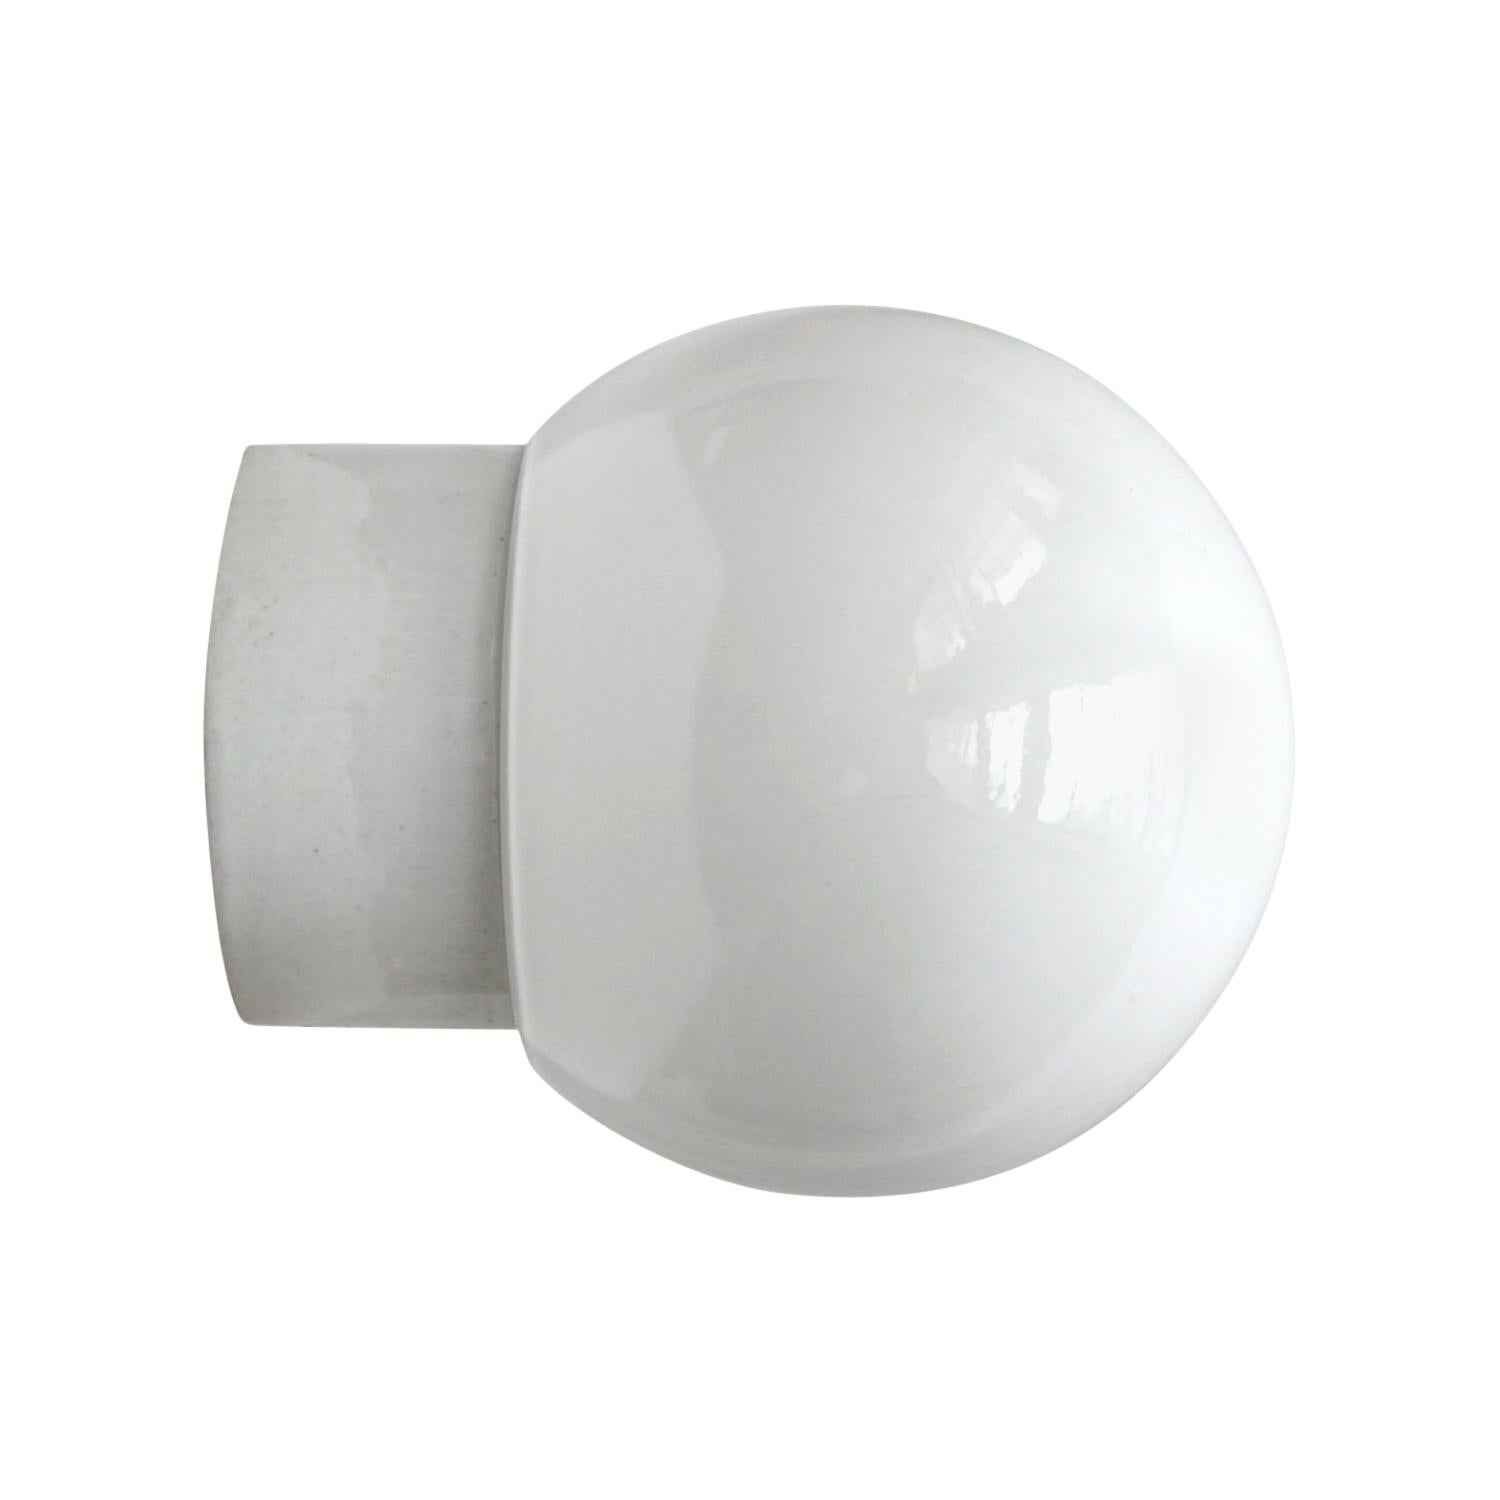 White Porcelain Vintage Industrial Opaline Glass Wall Lamp Scone